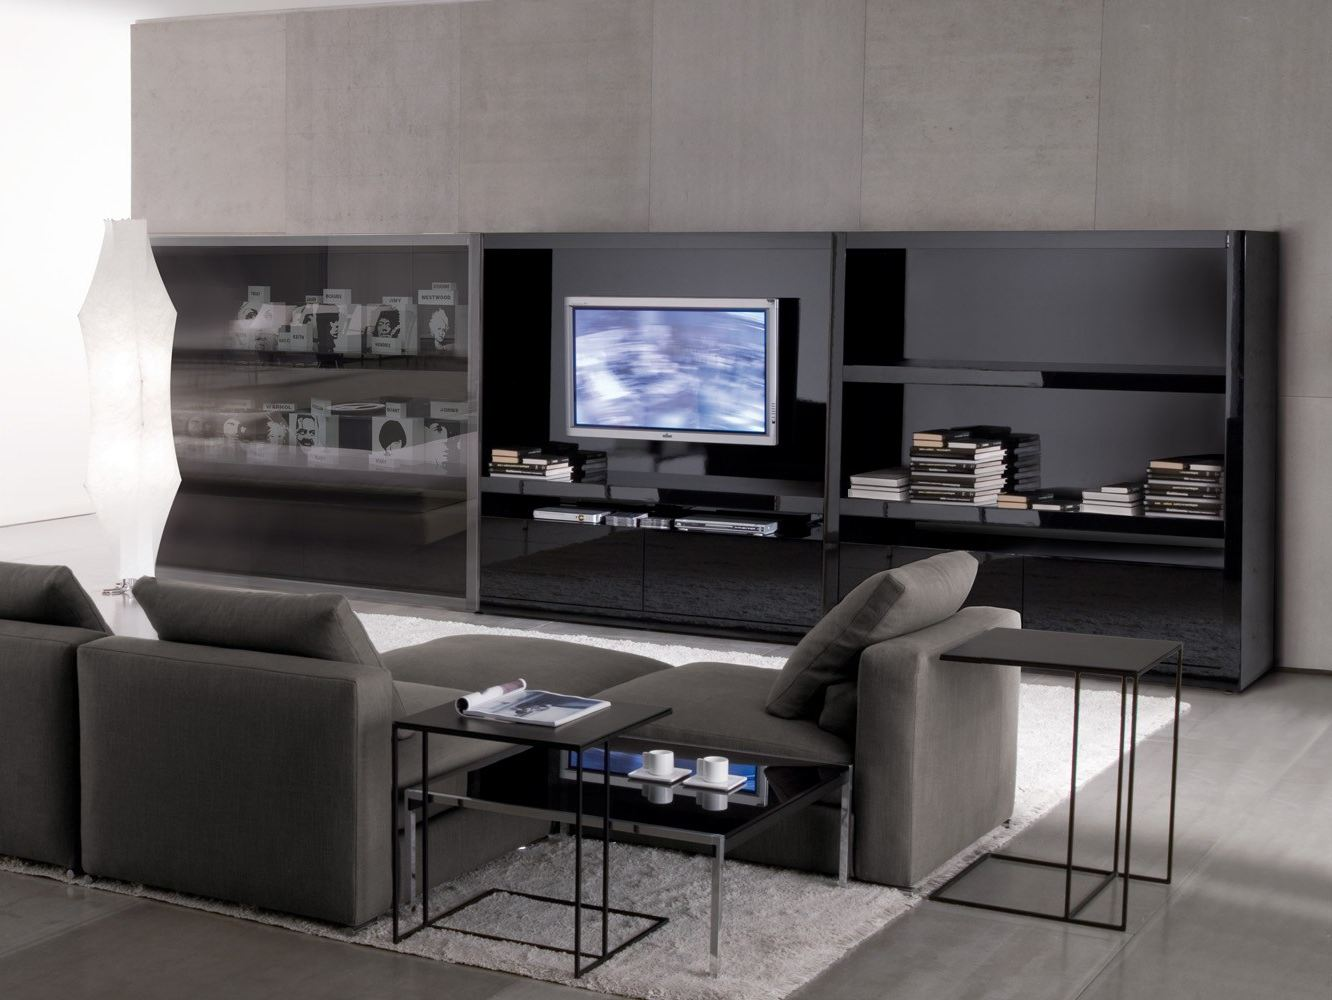 Mobile tv johns hi fi by minotti design rodolfo dordoni - Mobile hi fi ikea ...